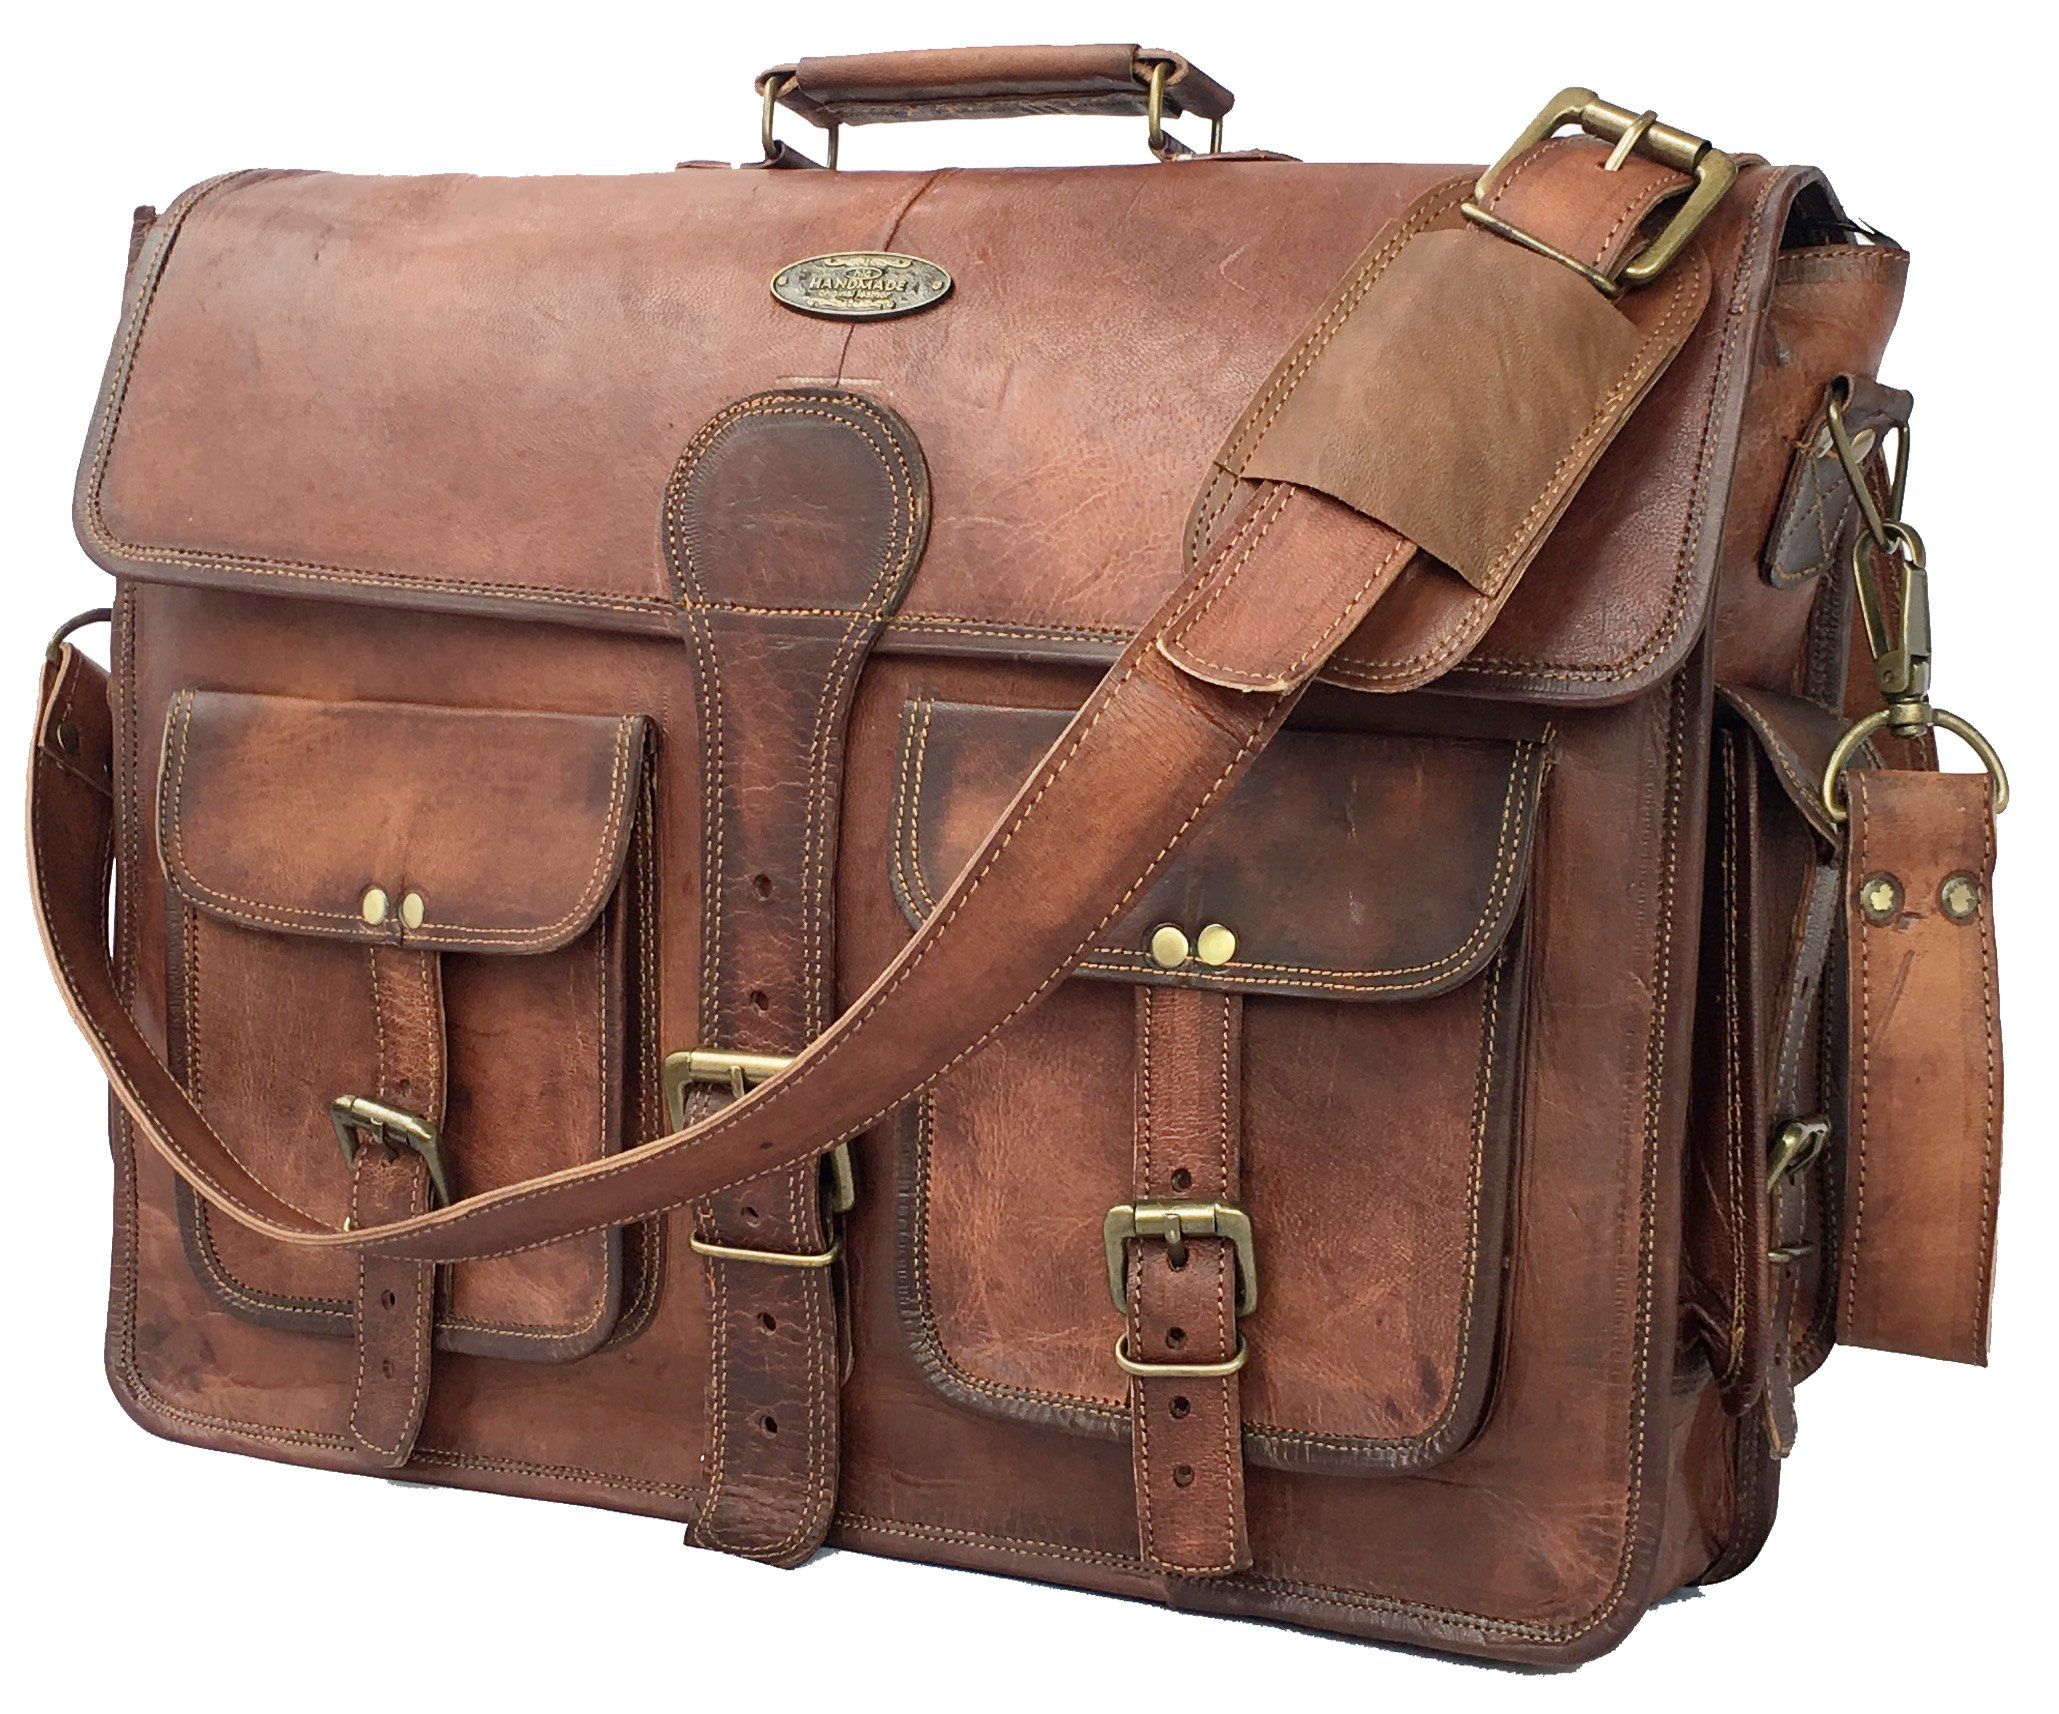 972241f866a4 Cheap Leather Satchel Computer Bag, find Leather Satchel Computer ...